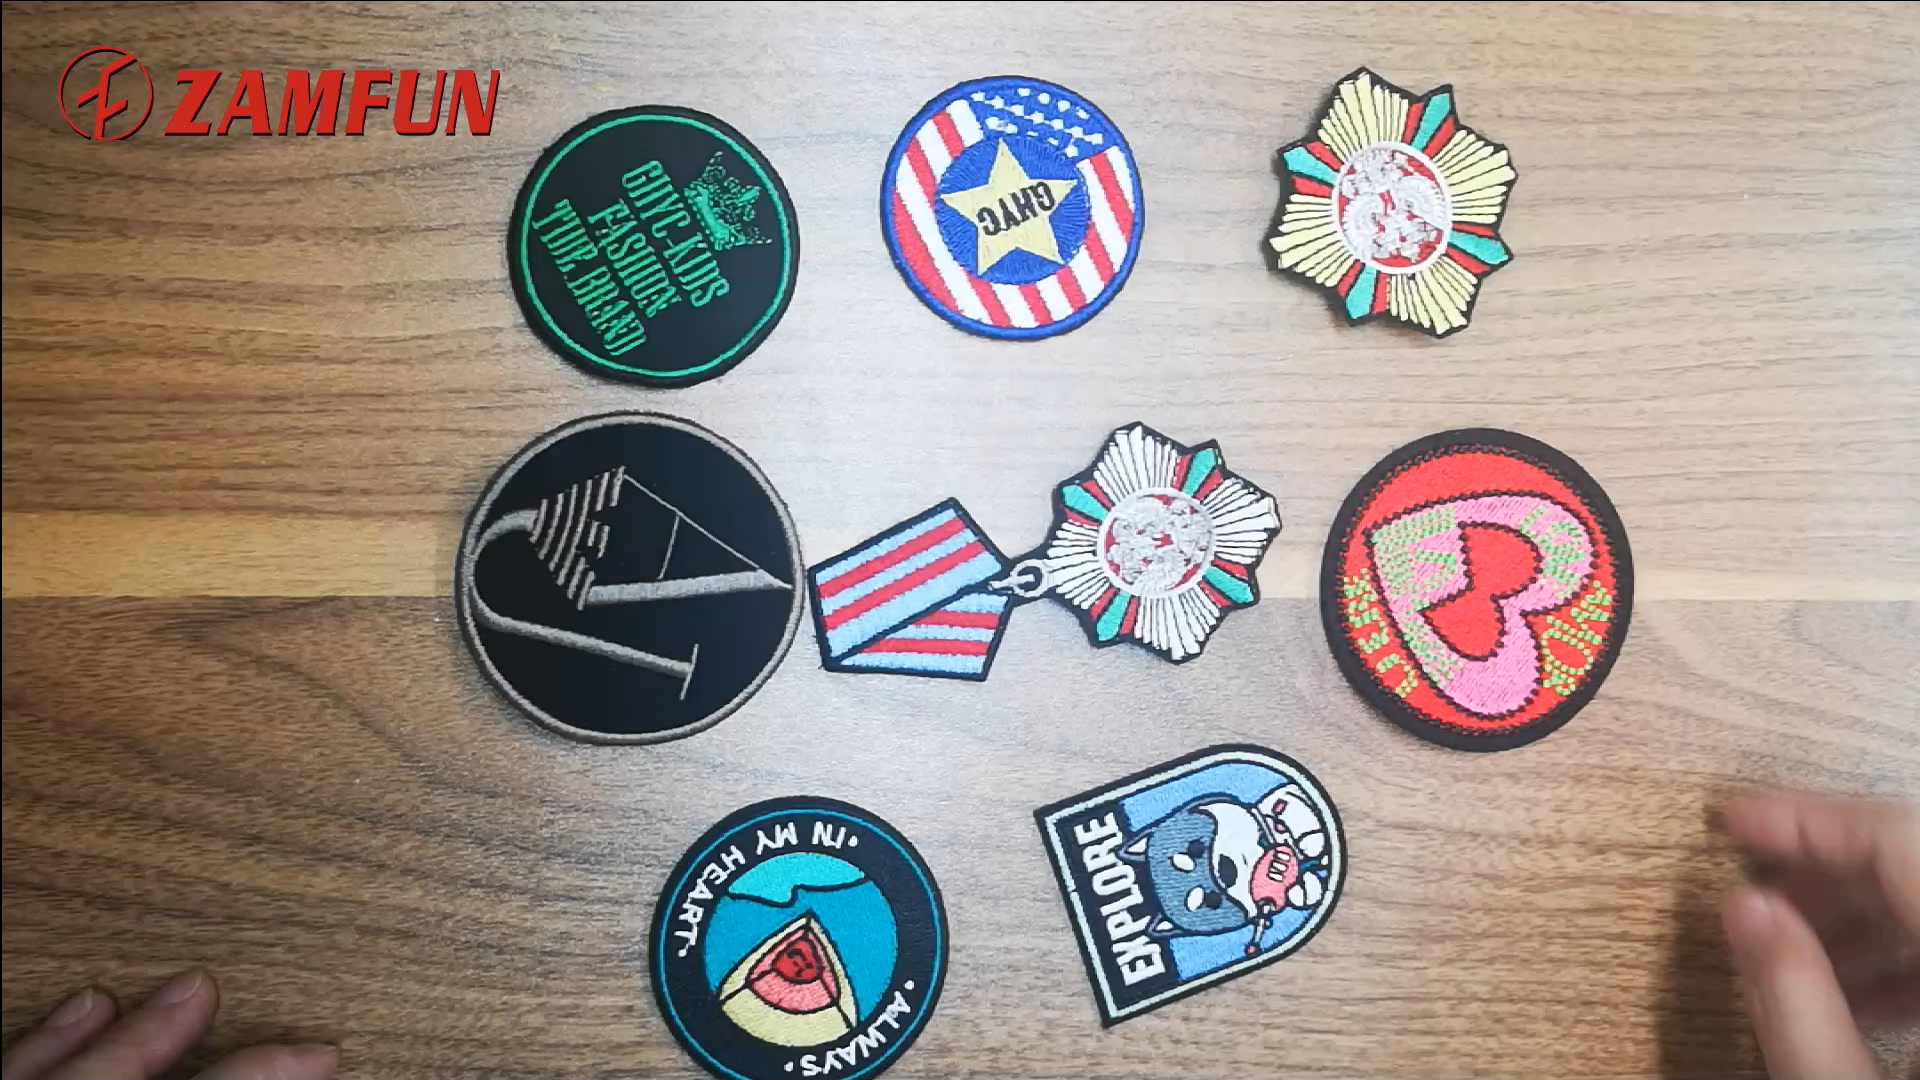 2020 ZAMFUN Embroidered Service Custom  Logo 100% Machine Embroidery Patches and Badges with Iron on